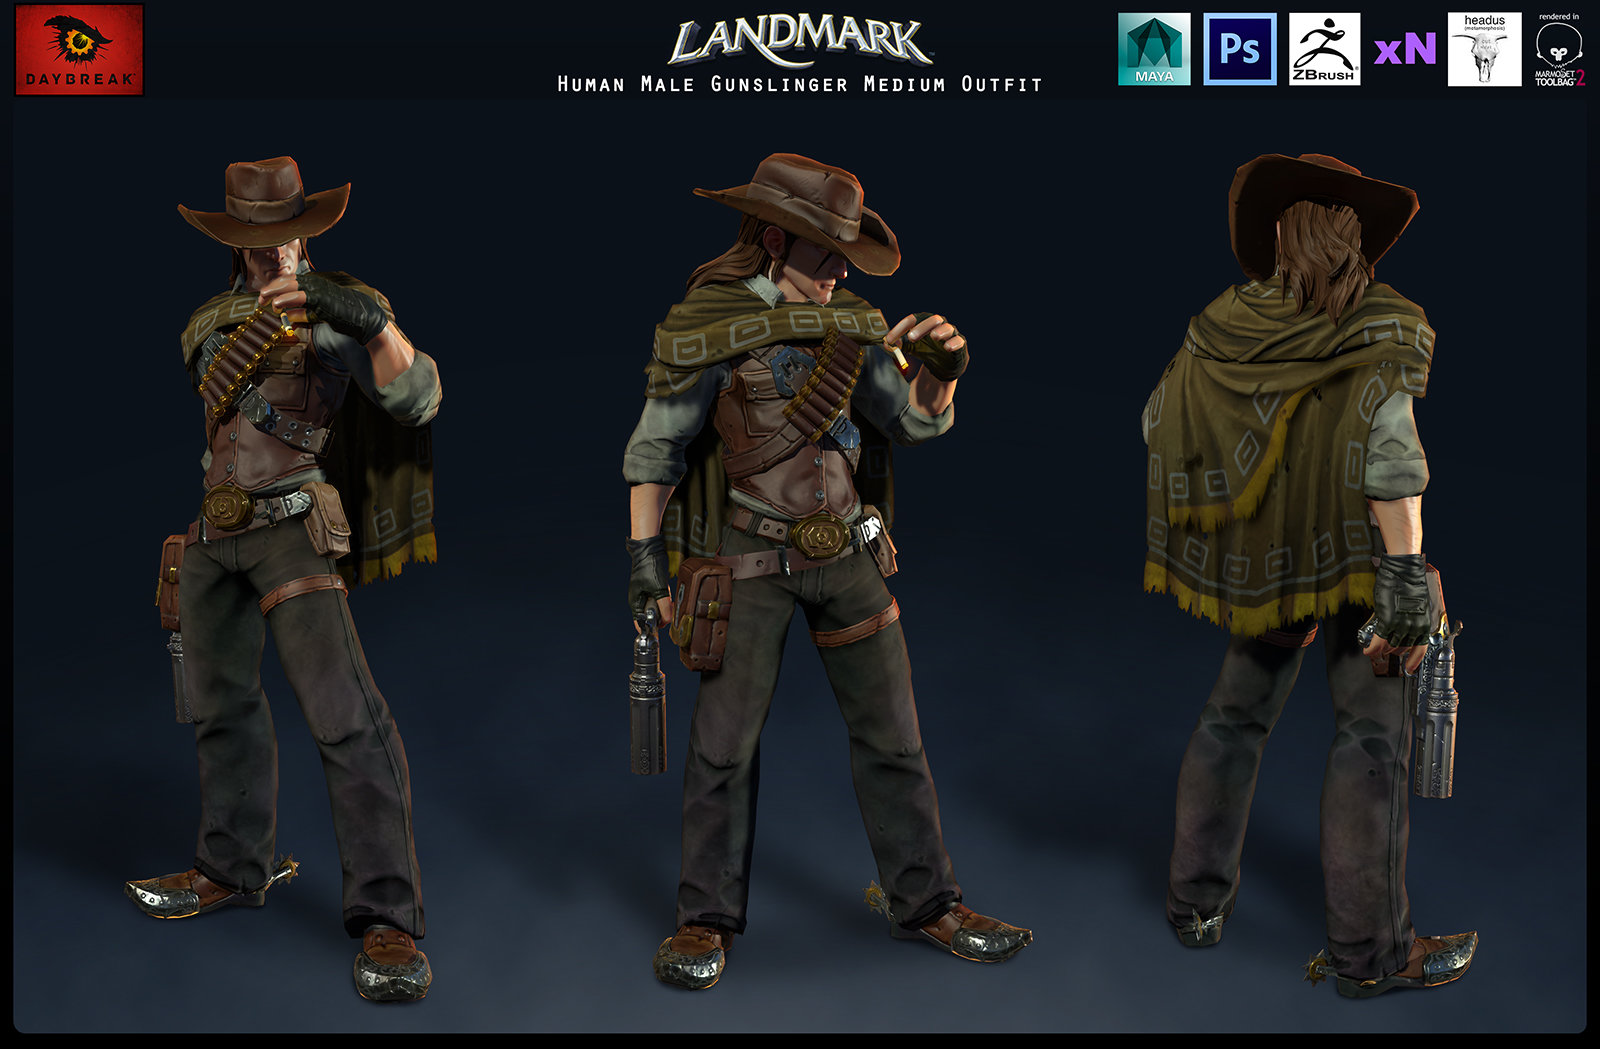 Human Male Gunslinger Medium Outfit